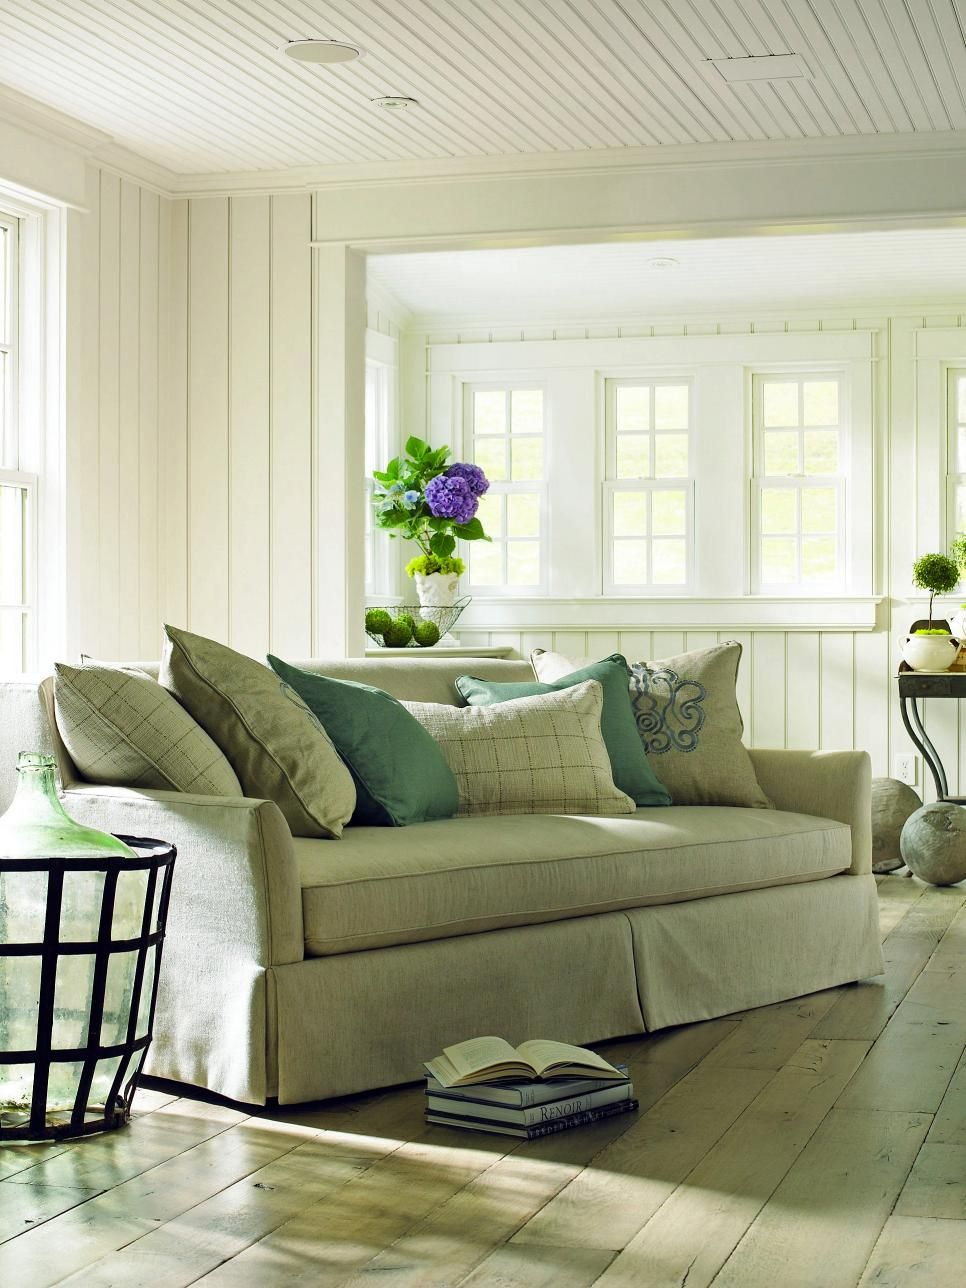 Anyone Will Feel At Home In This Shabby Chic Living Room With Light Green Paneled Walls